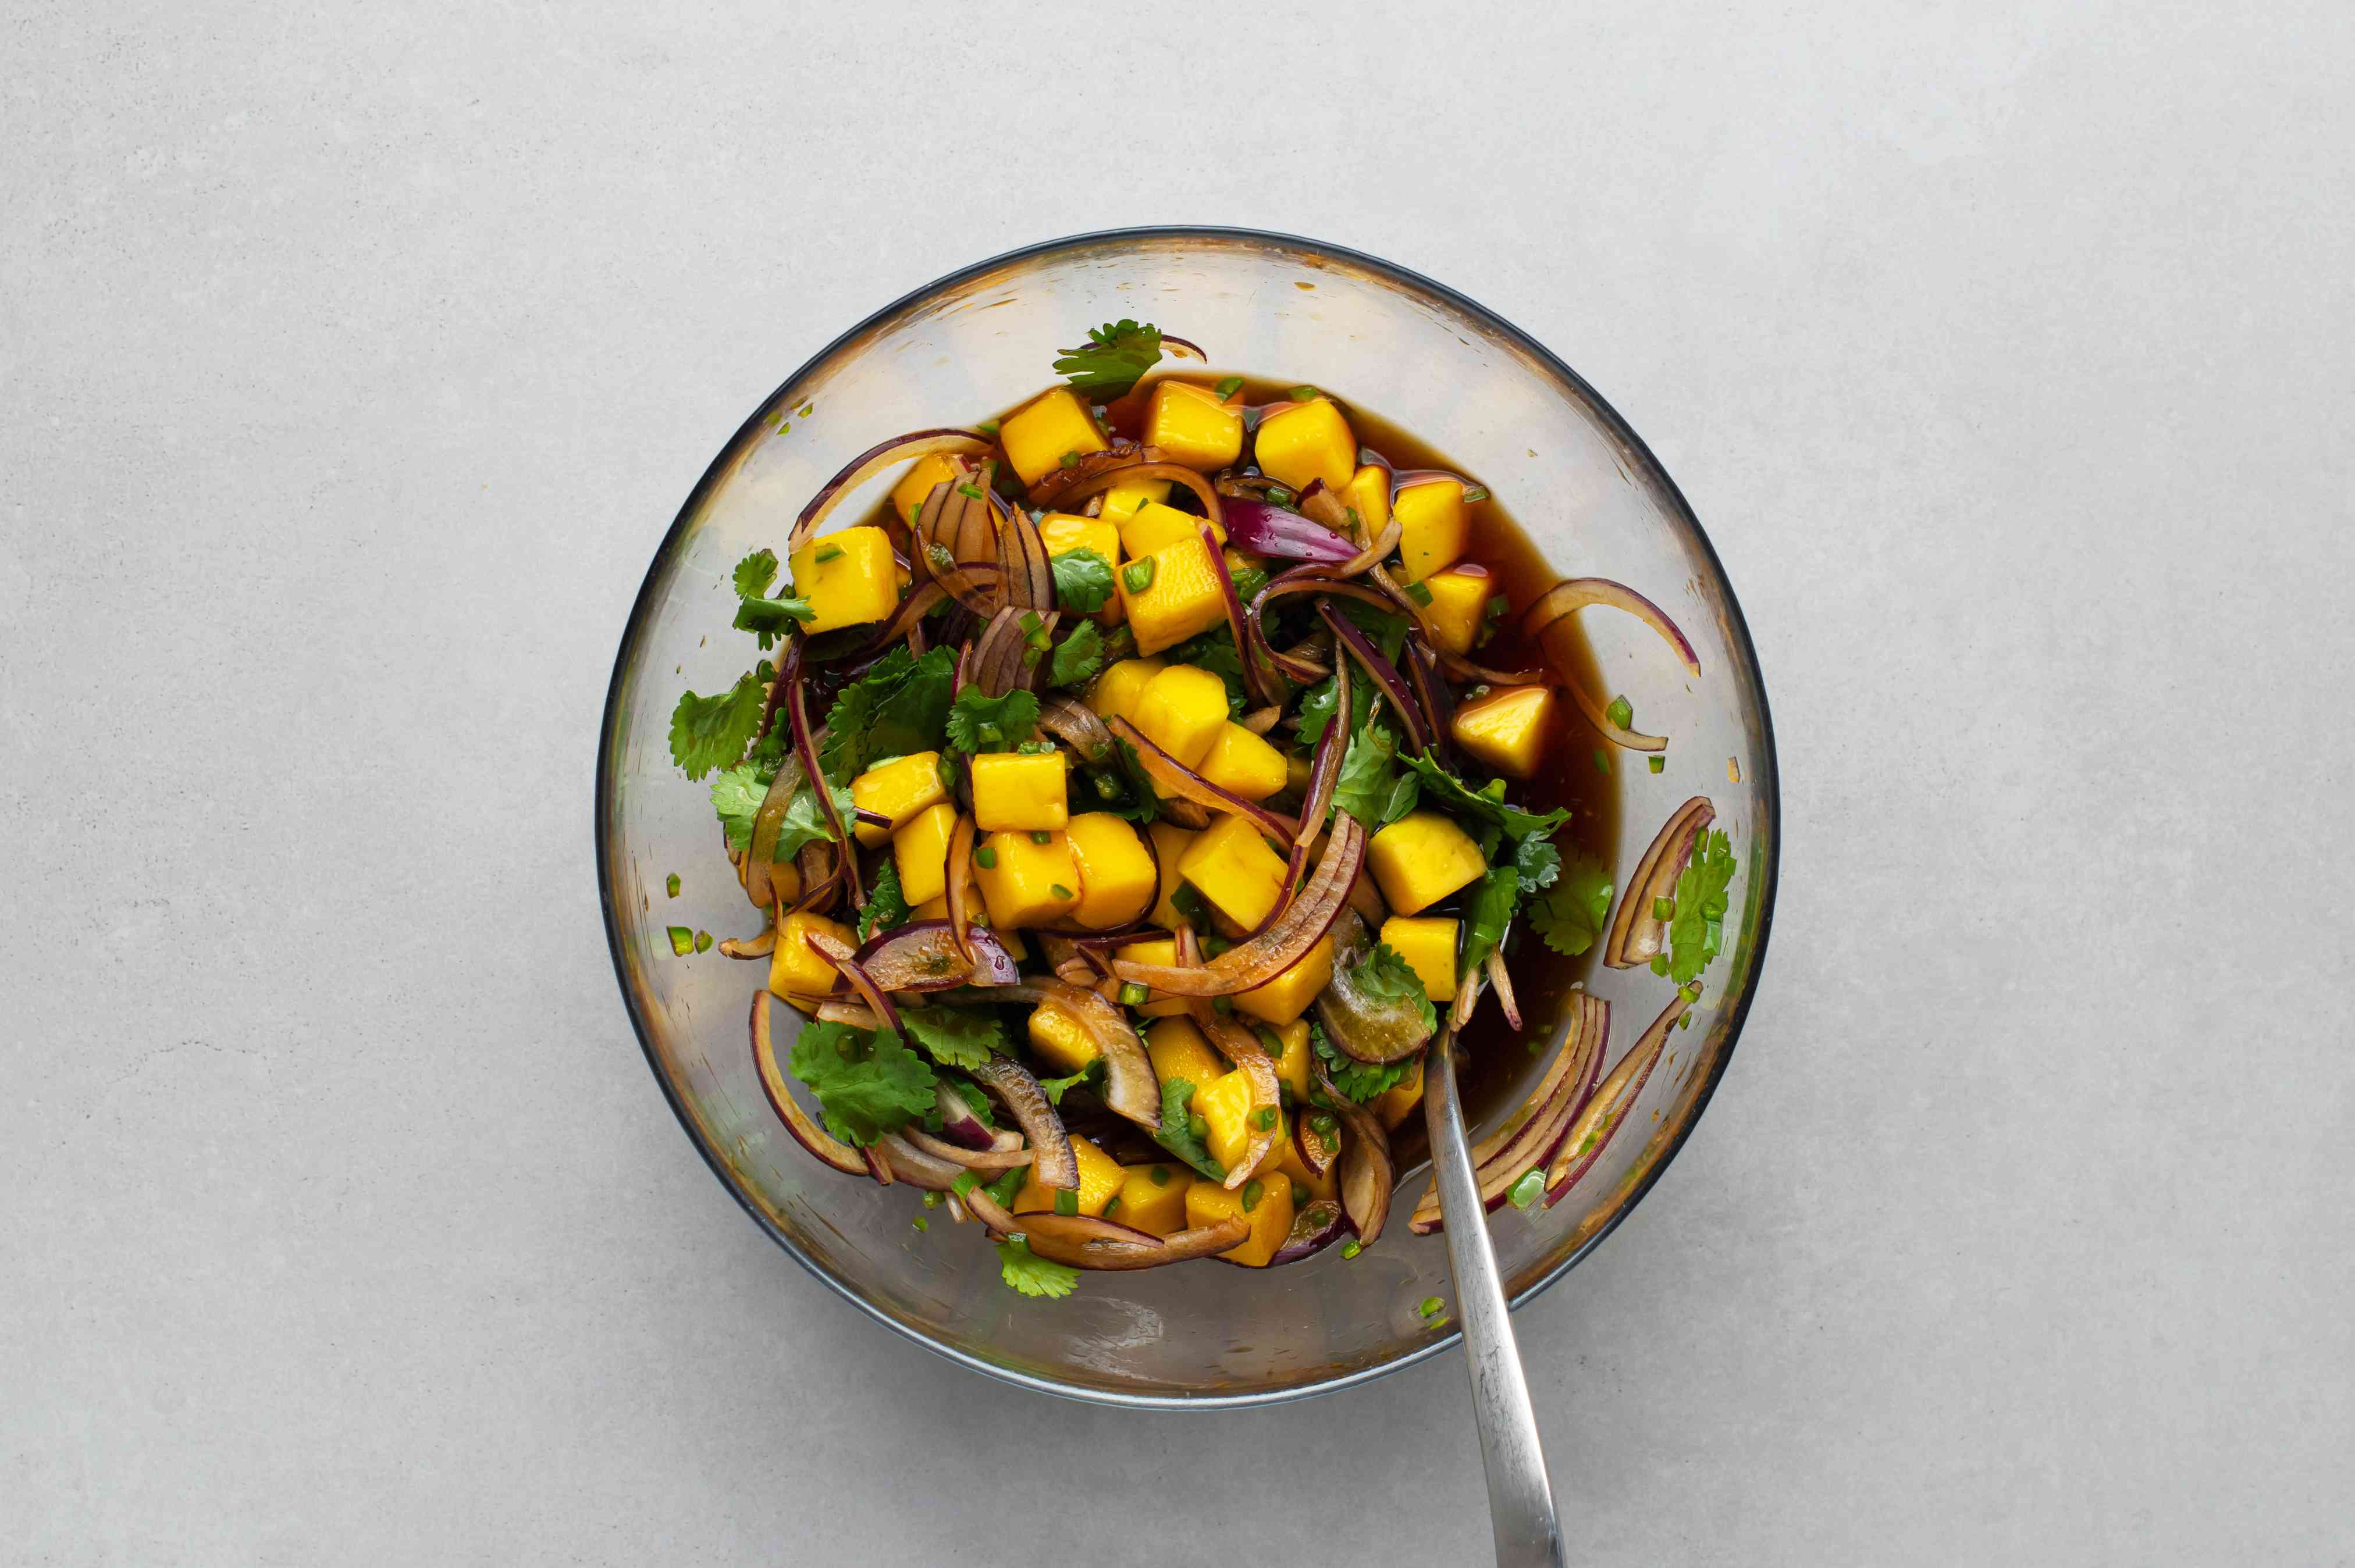 mix together the soy sauce, mirin, onion, mango, jalapeños, and cilantro in a small bowl